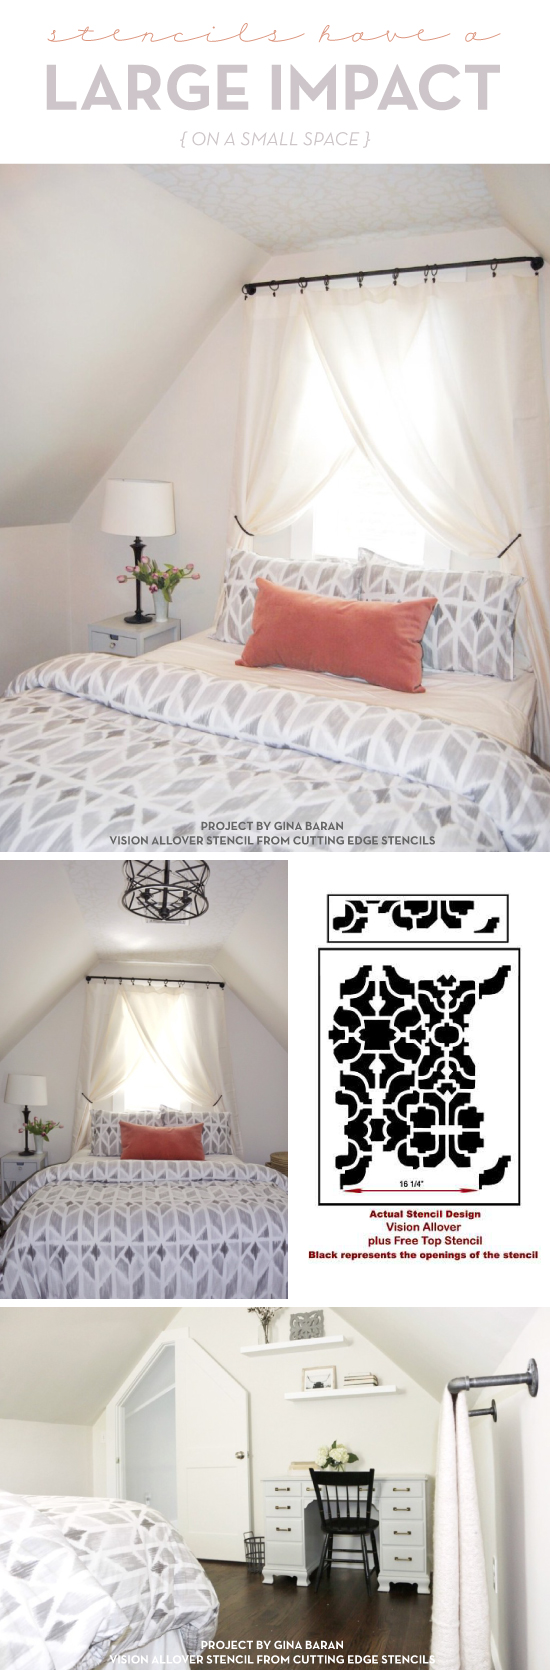 Cutting Edge Stencils shares a DIY guest bedroom makeover featuring a stenciled ceiling using the Vision allover wall pattern. http://www.cuttingedgestencils.com/vision-craft-stencil.html